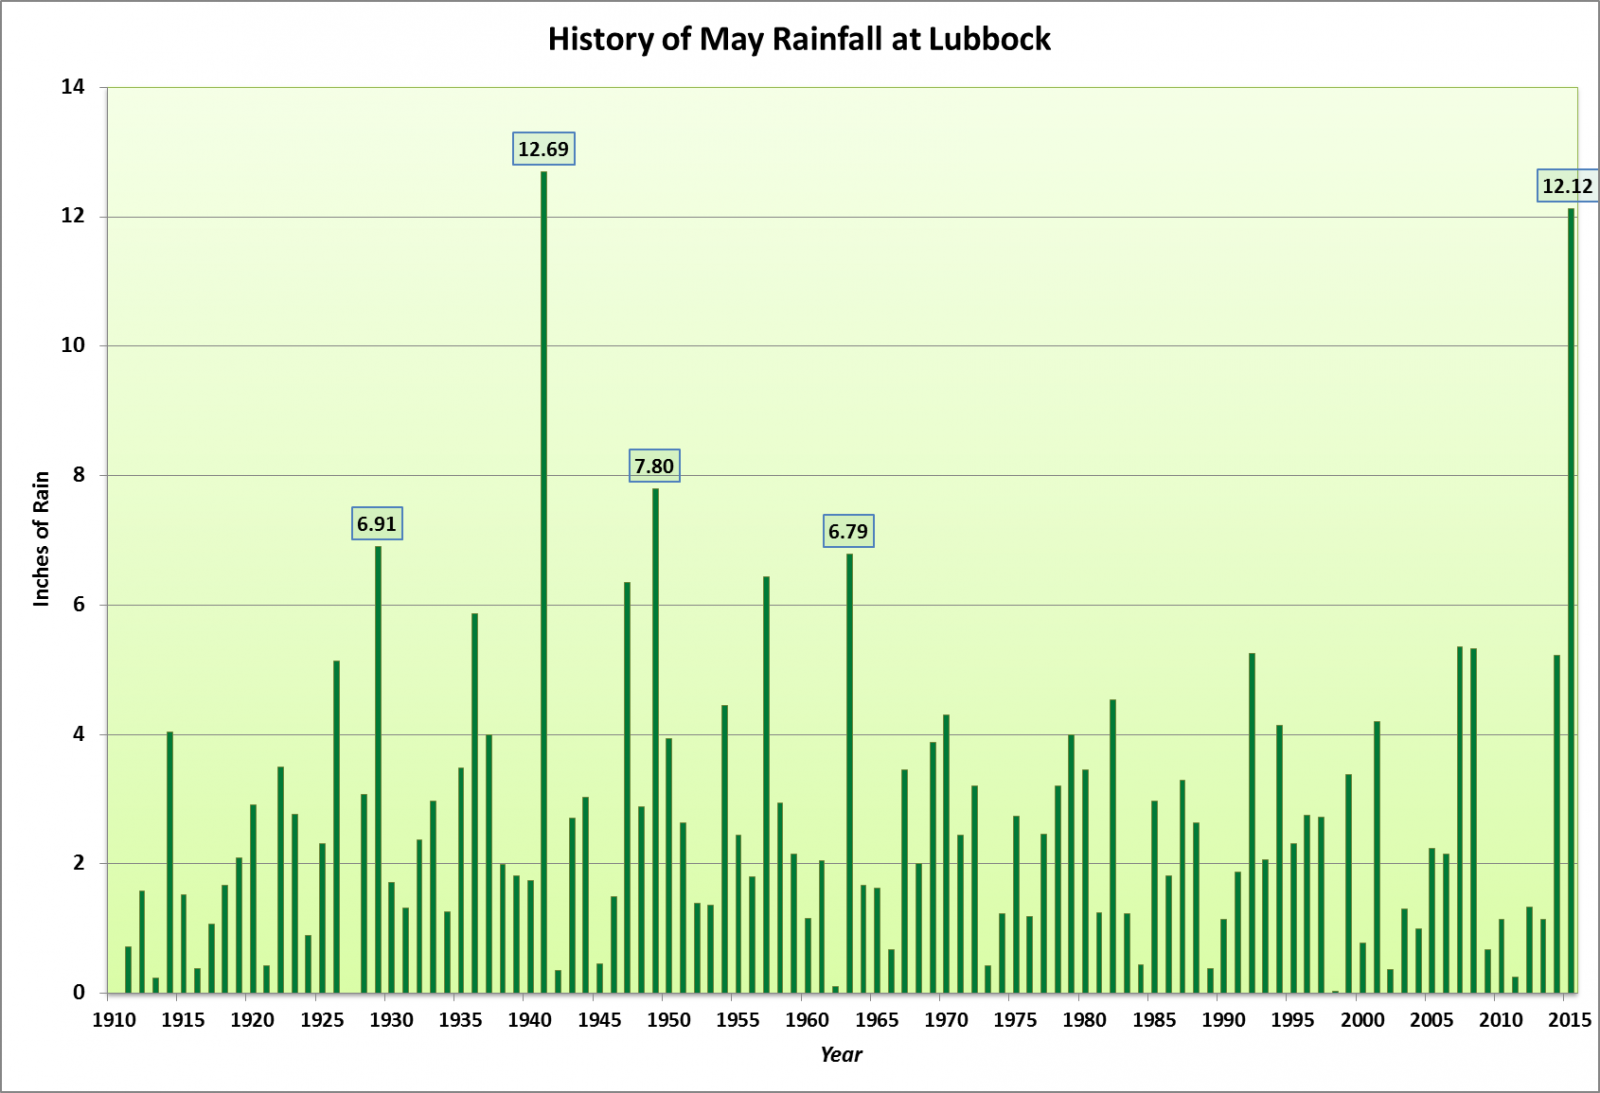 Nws Lubbock Tx Record Setting May Rains In 2015